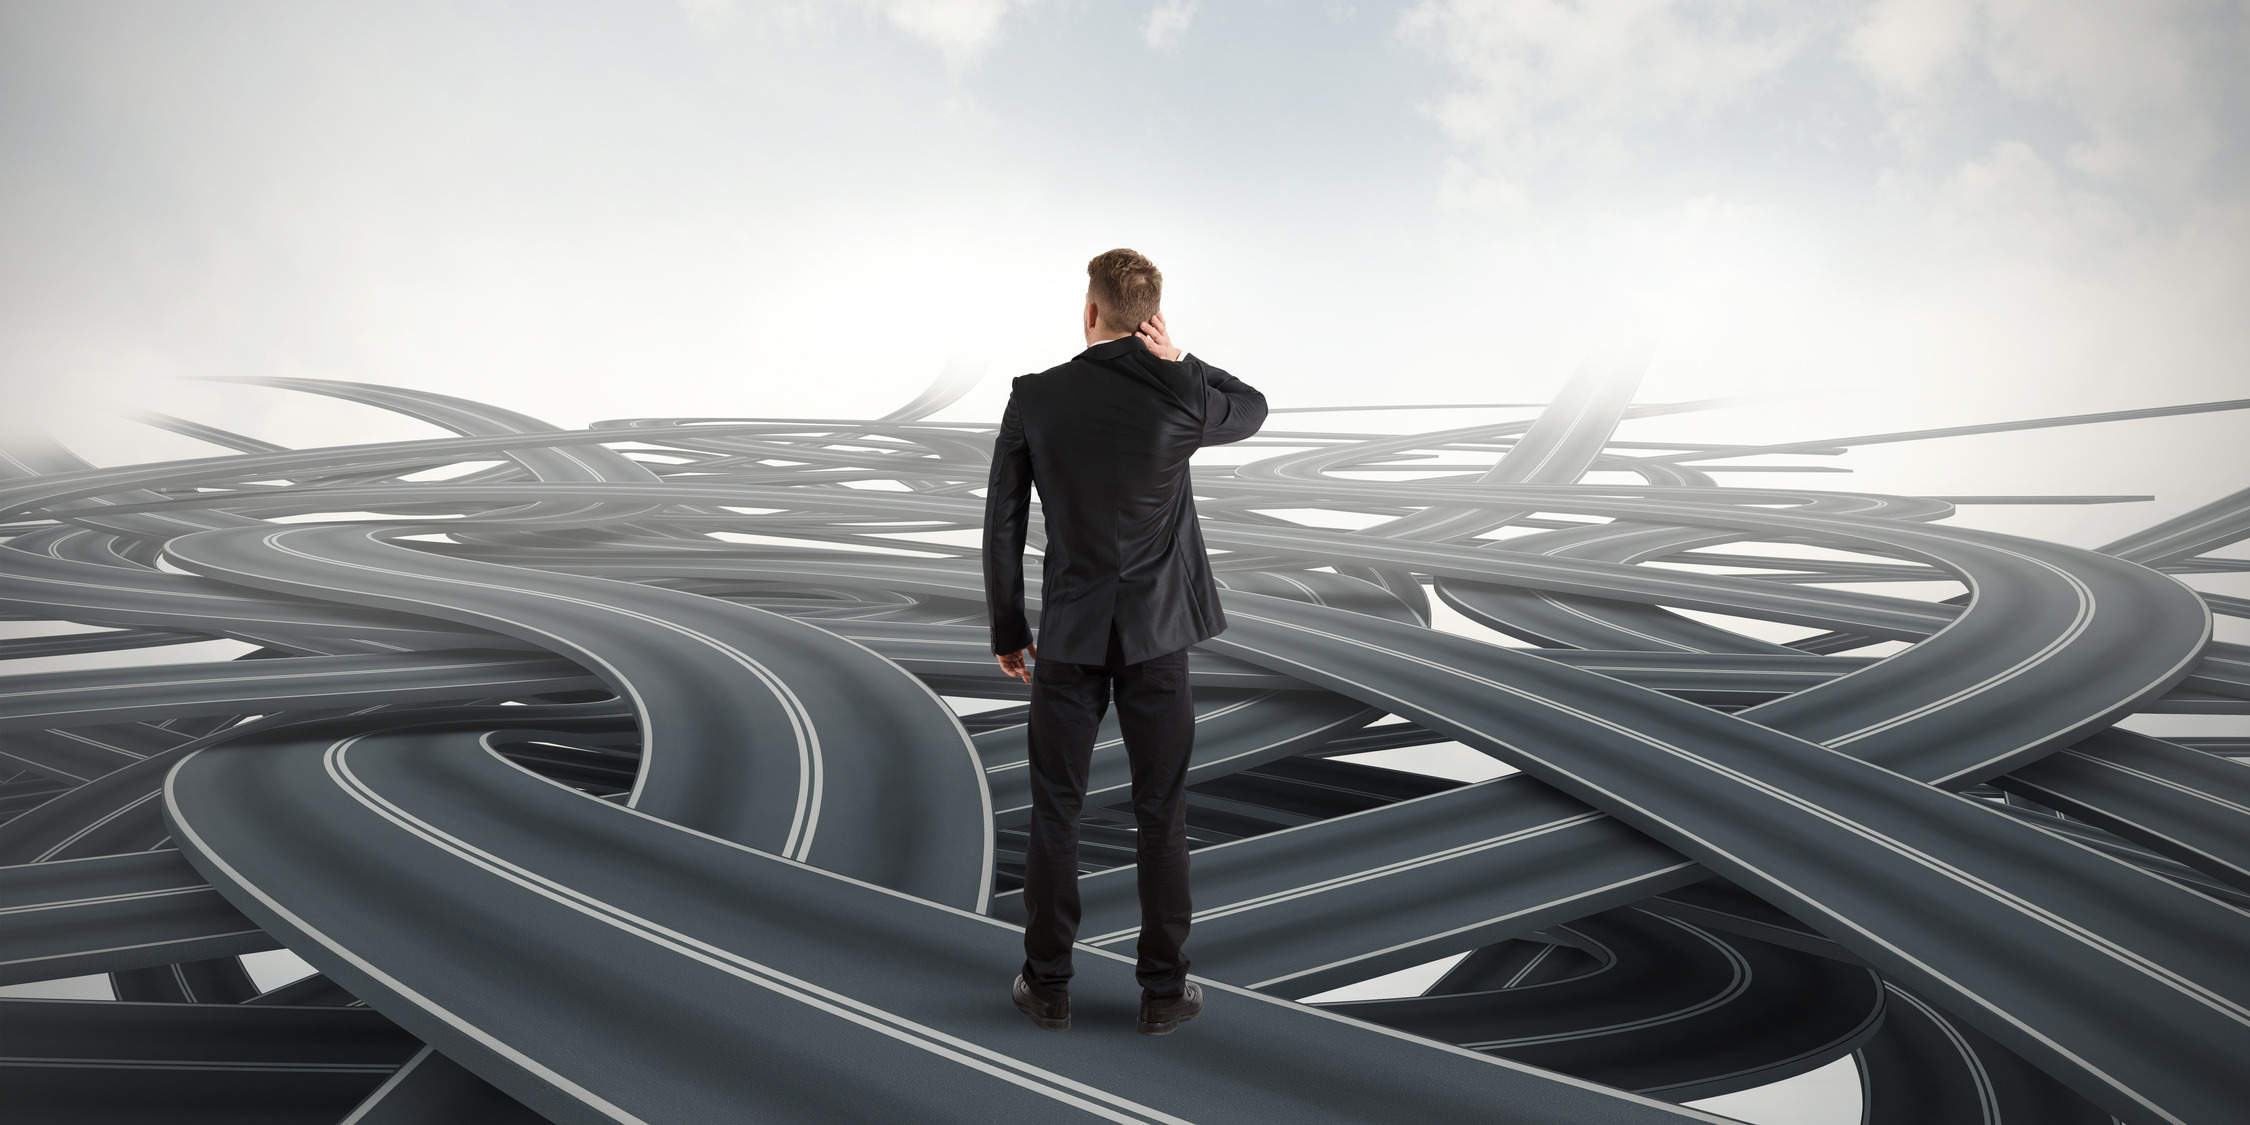 Navigating Uncertainty, Courageous Decisions